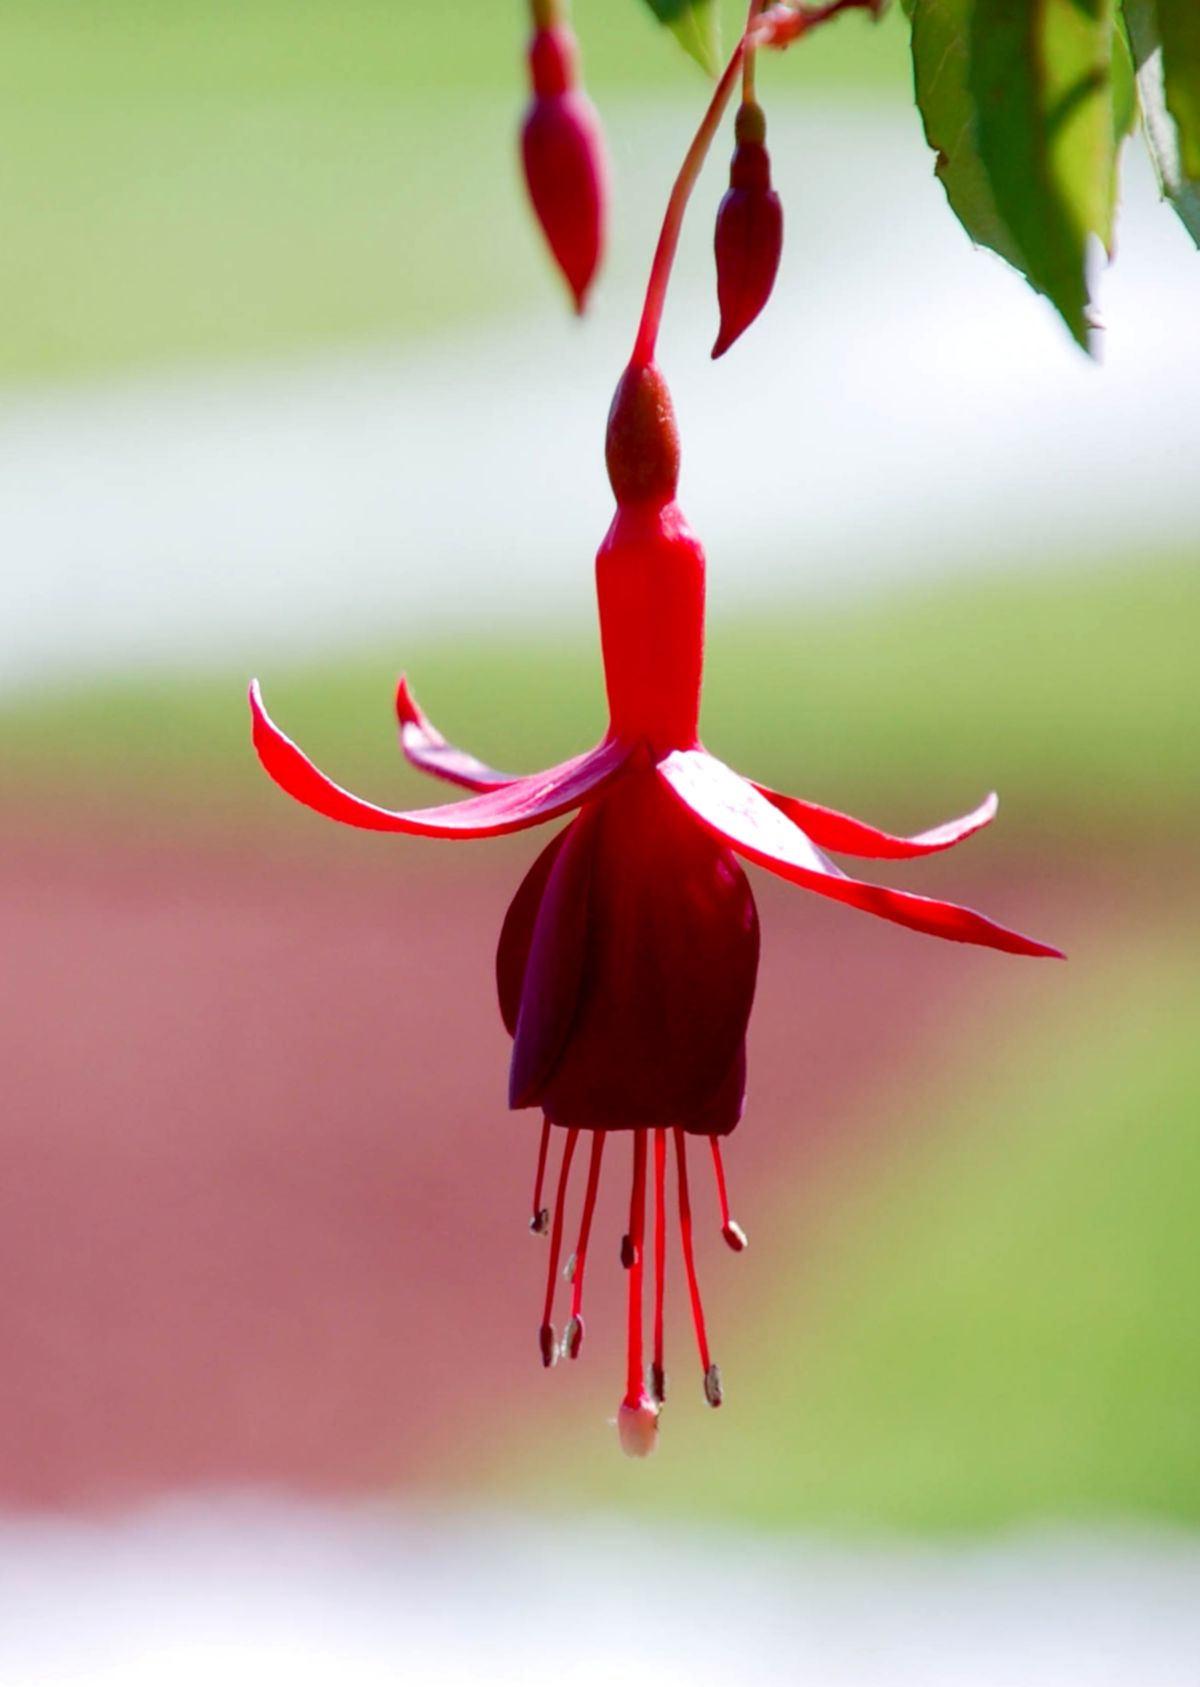 Fuchsia, exceptional flowers